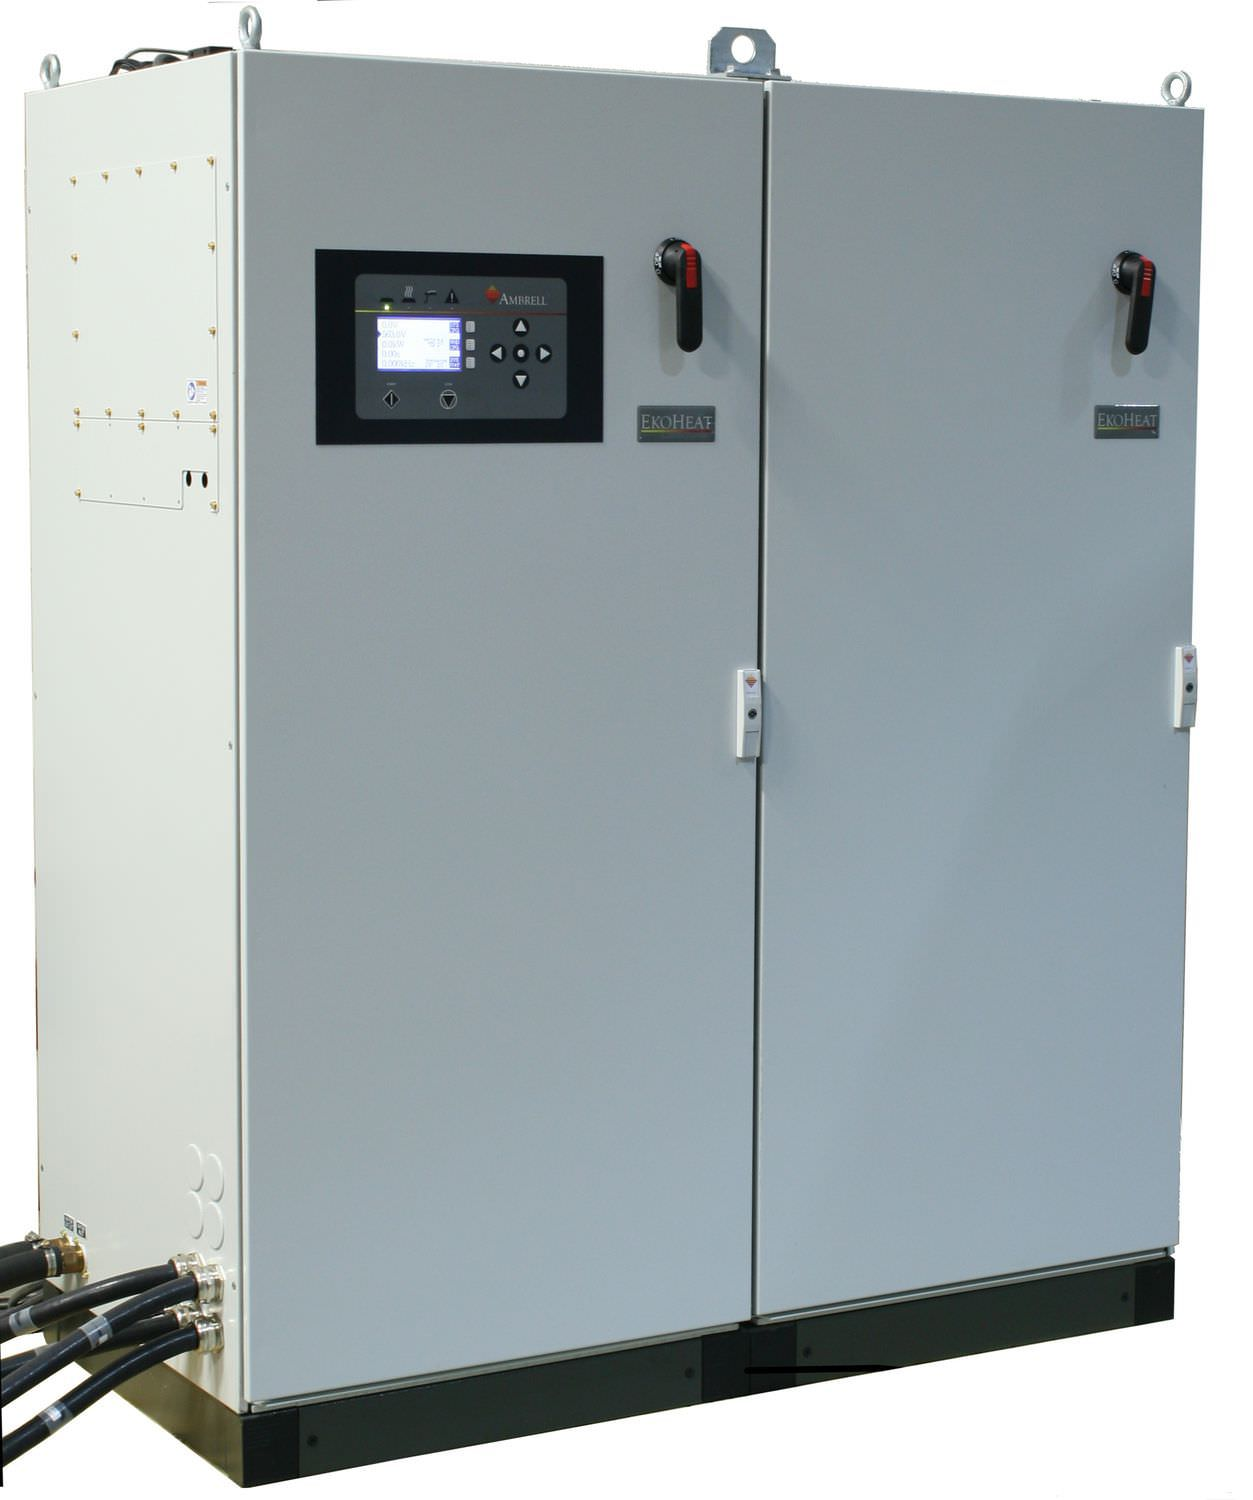 EKOHEAT 500/3 Induction heater 500 kW, 2 – 5 kHz